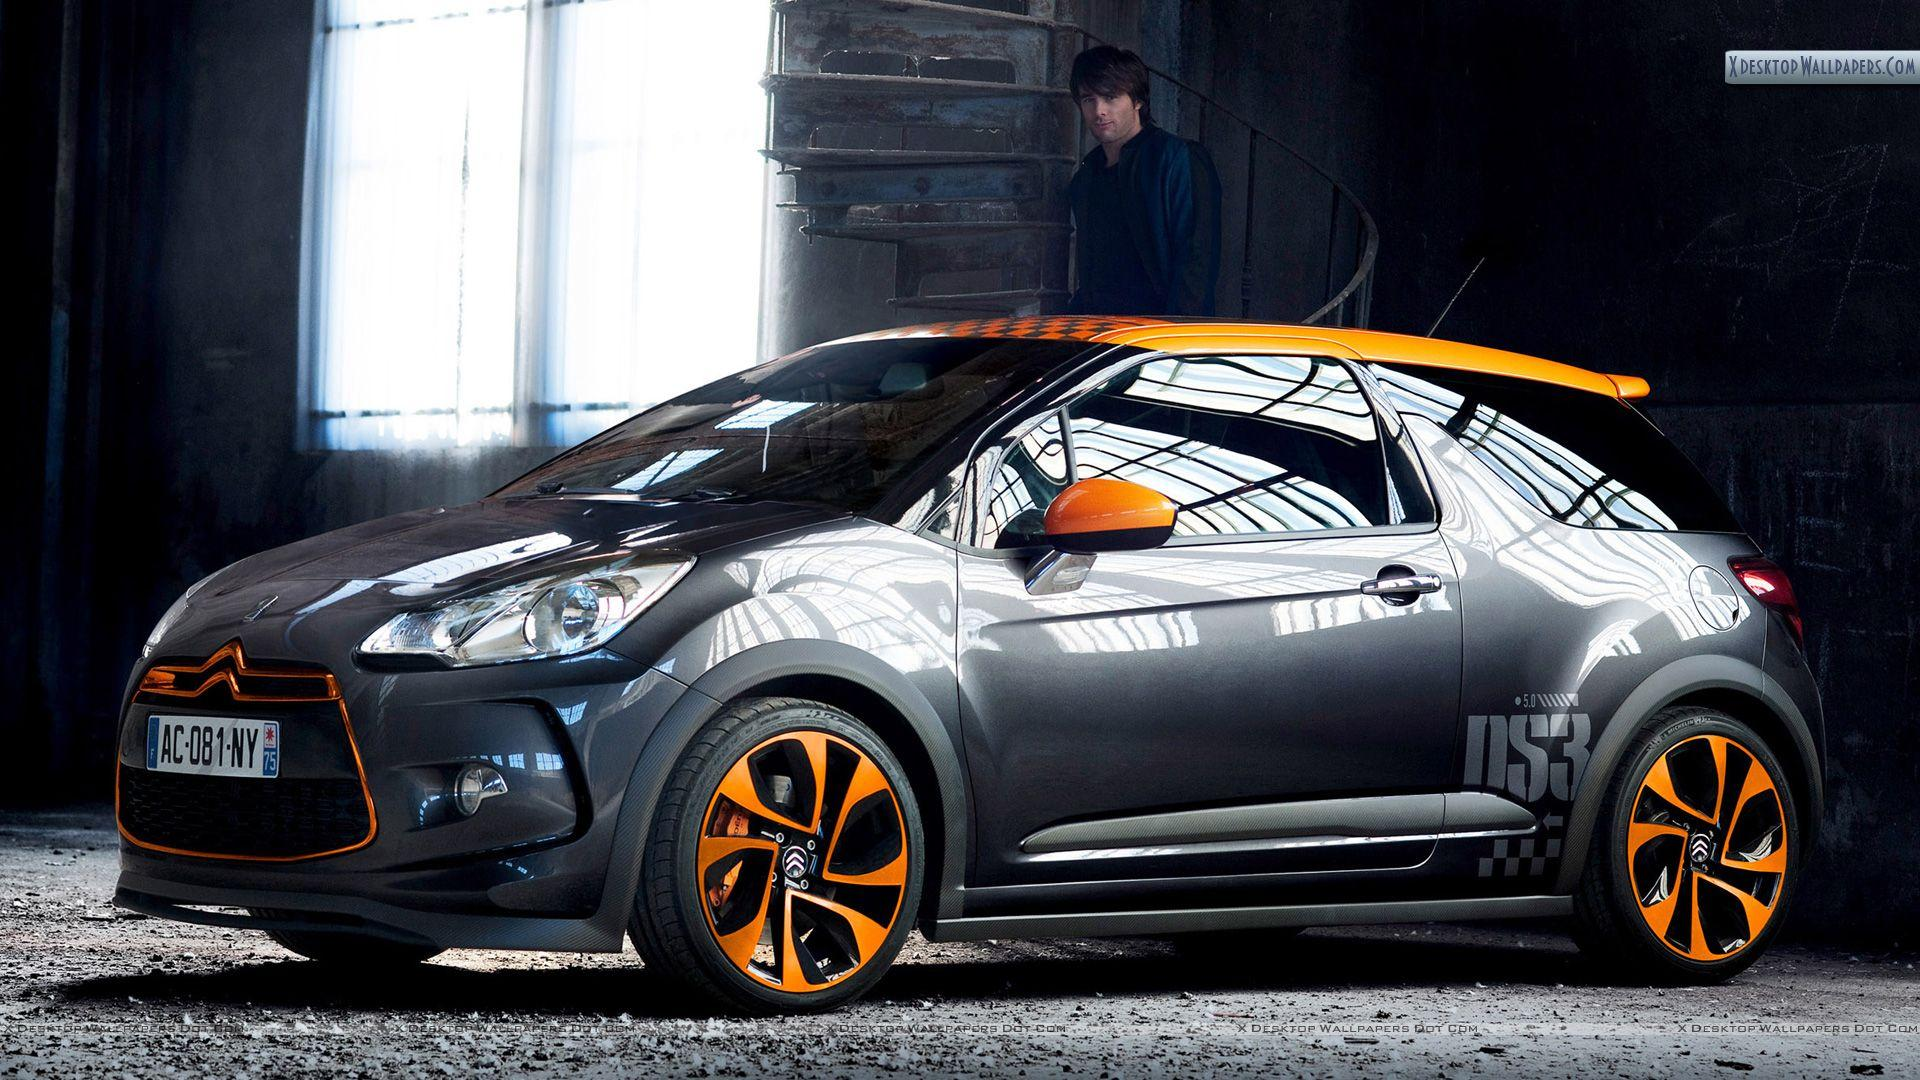 Citroen DS3 Wallpapers, Photos & Image in HD